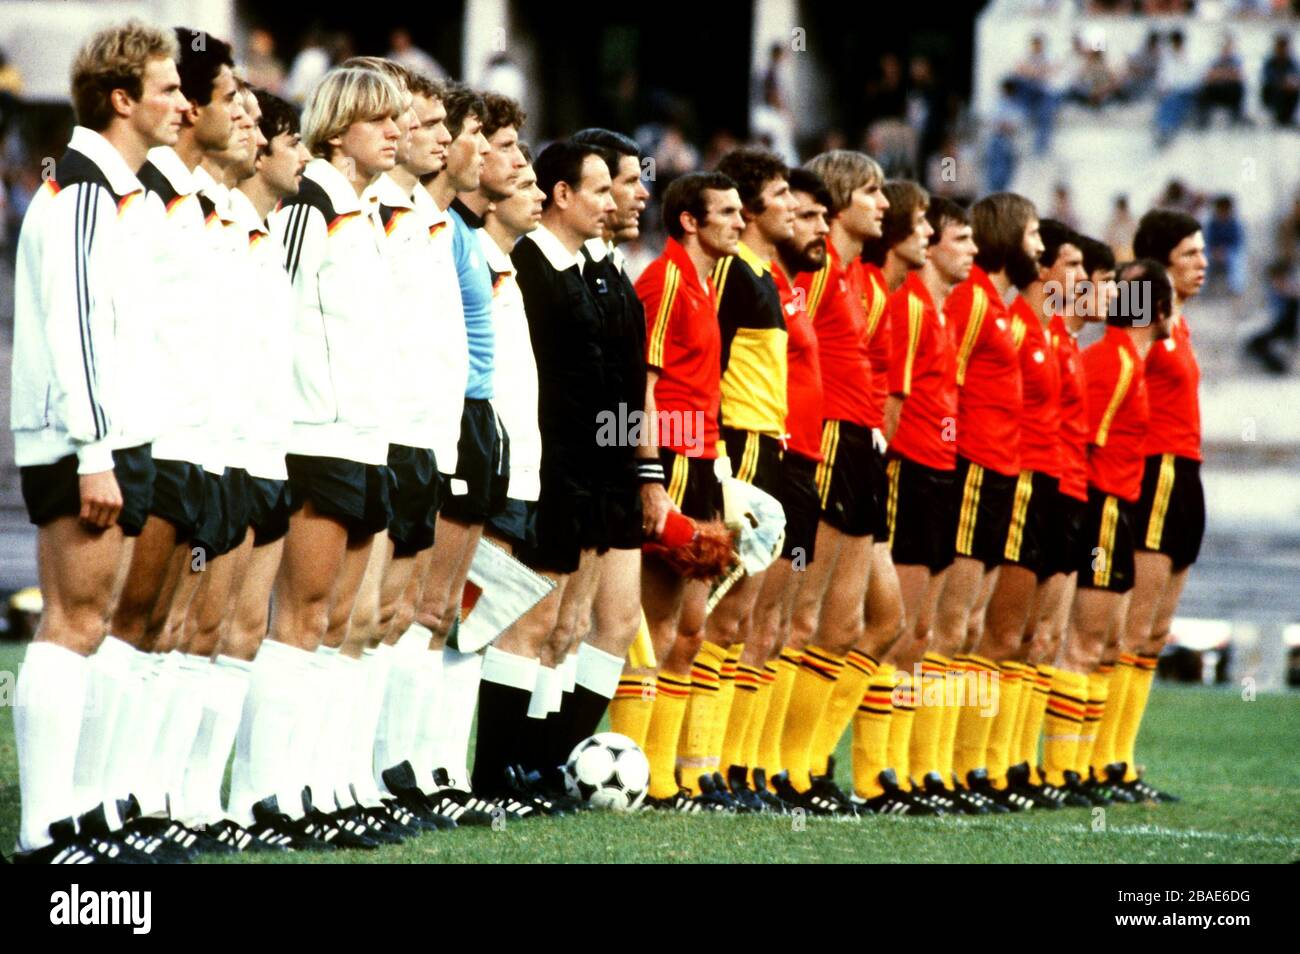 The two teams line up for the national anthems before the match Stock Photo